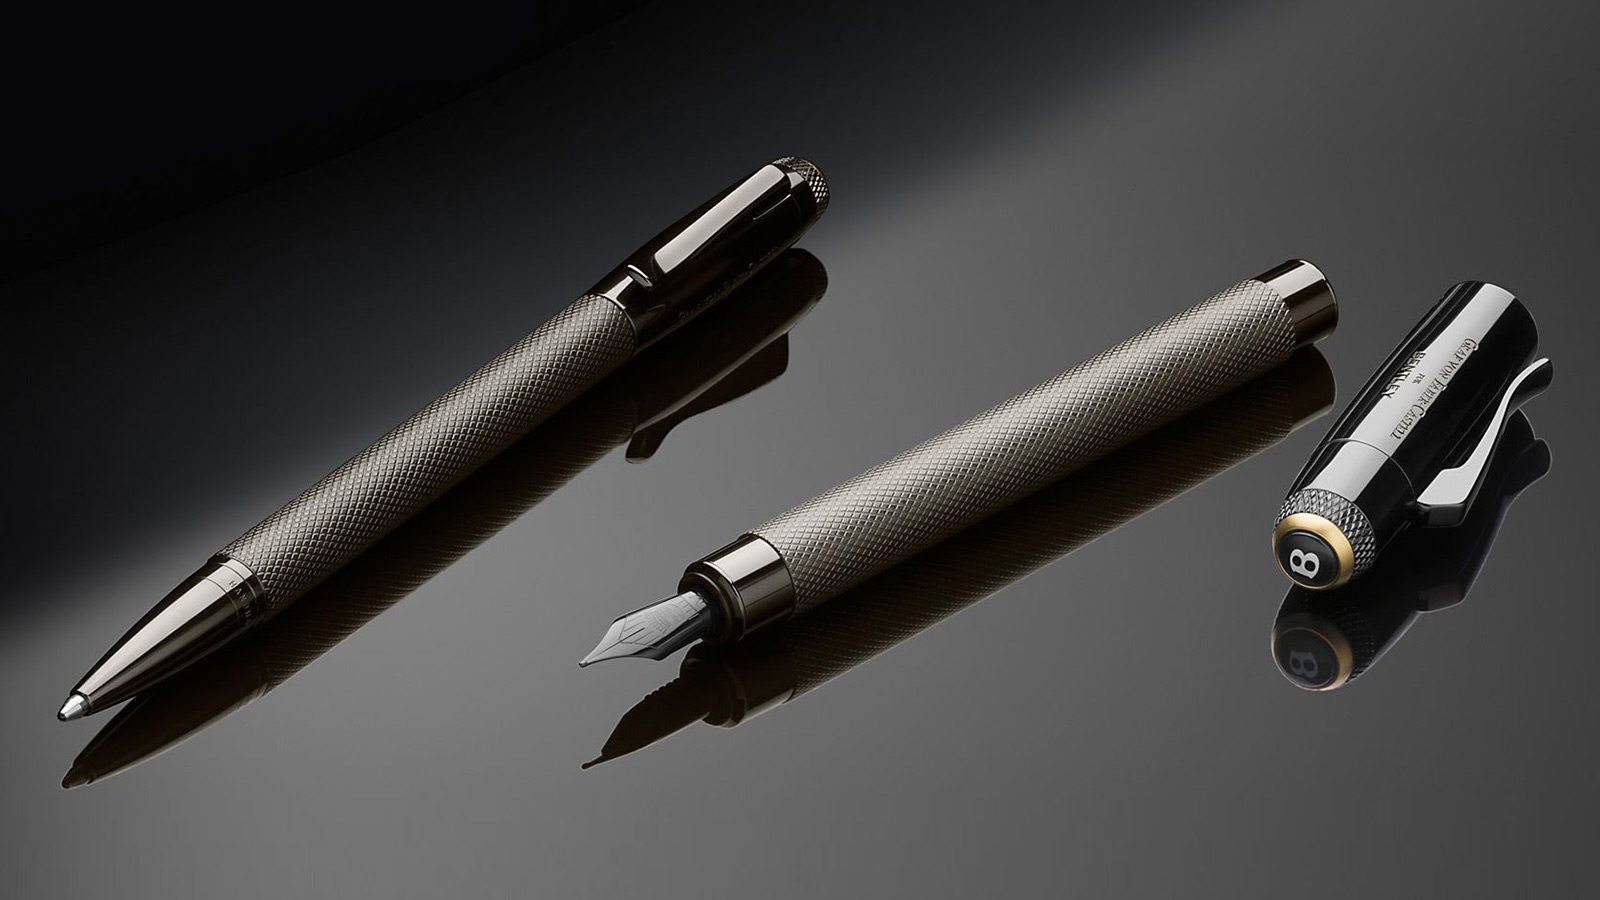 Bentley x Graf von Faber-Castell Limited Edition Centenary